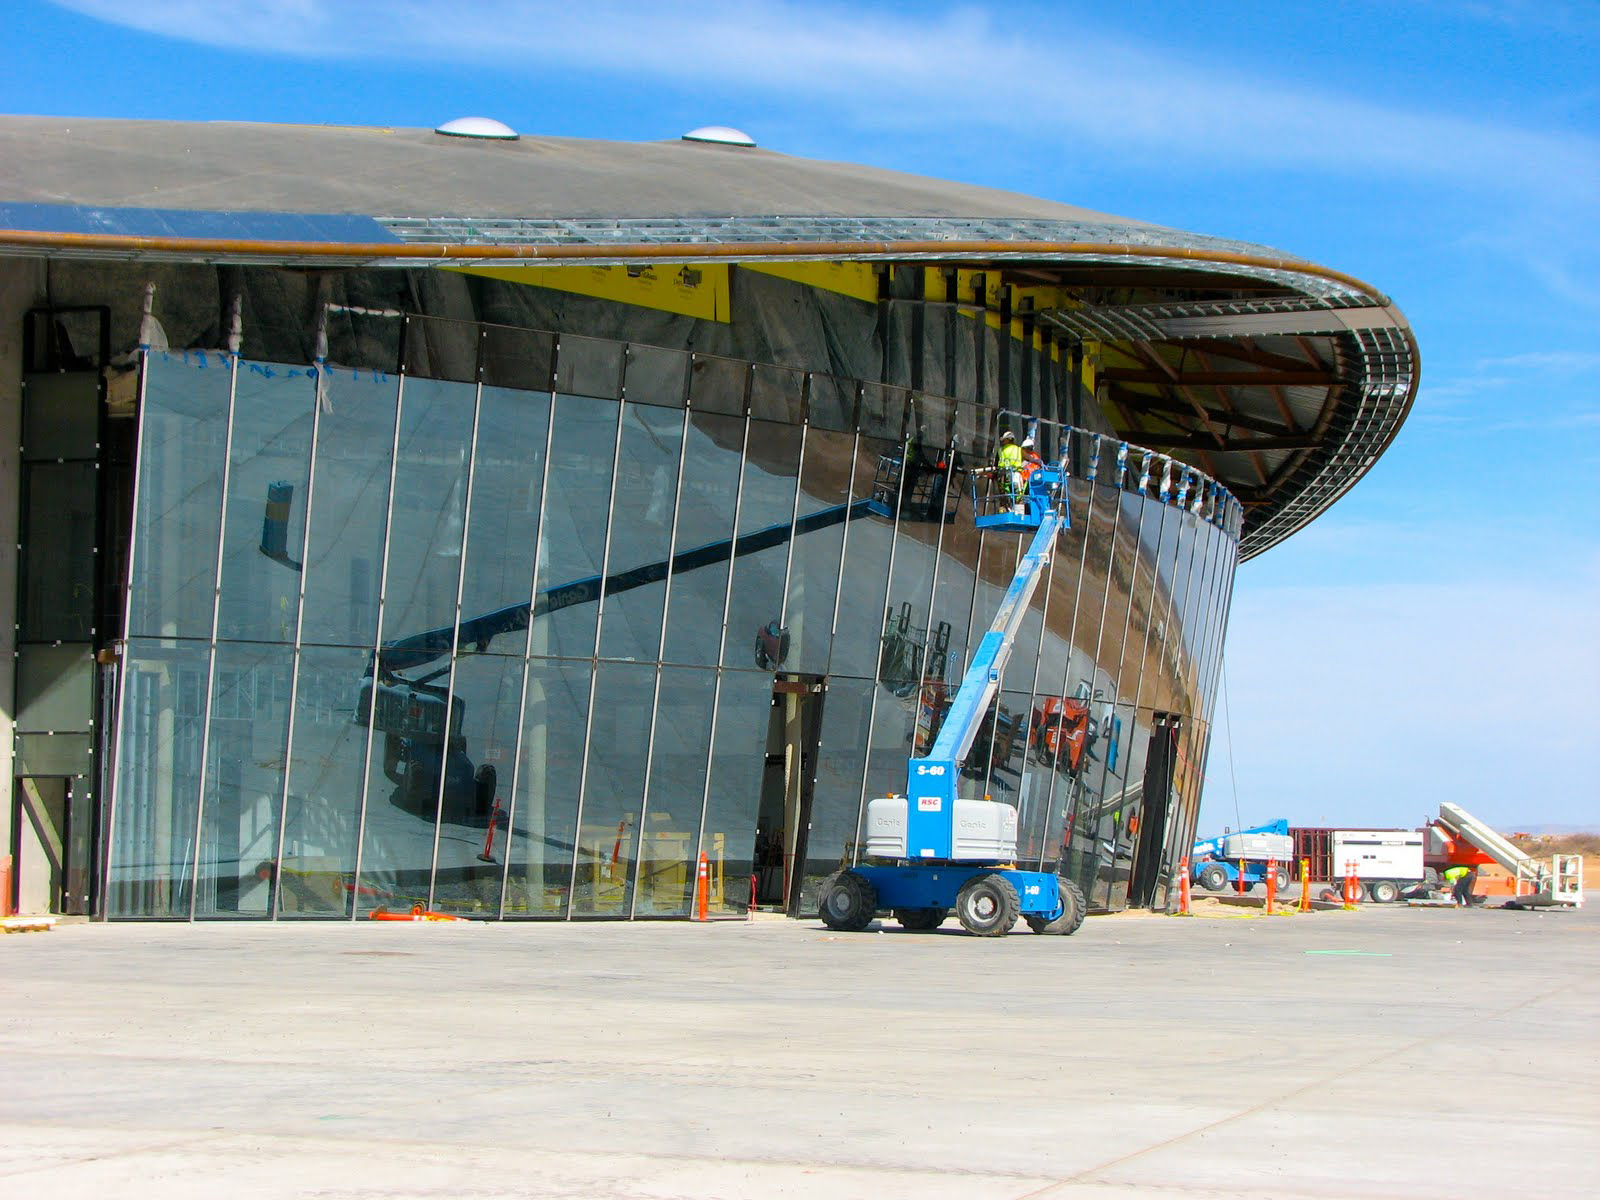 Spaceport America Terminal Nears Completion